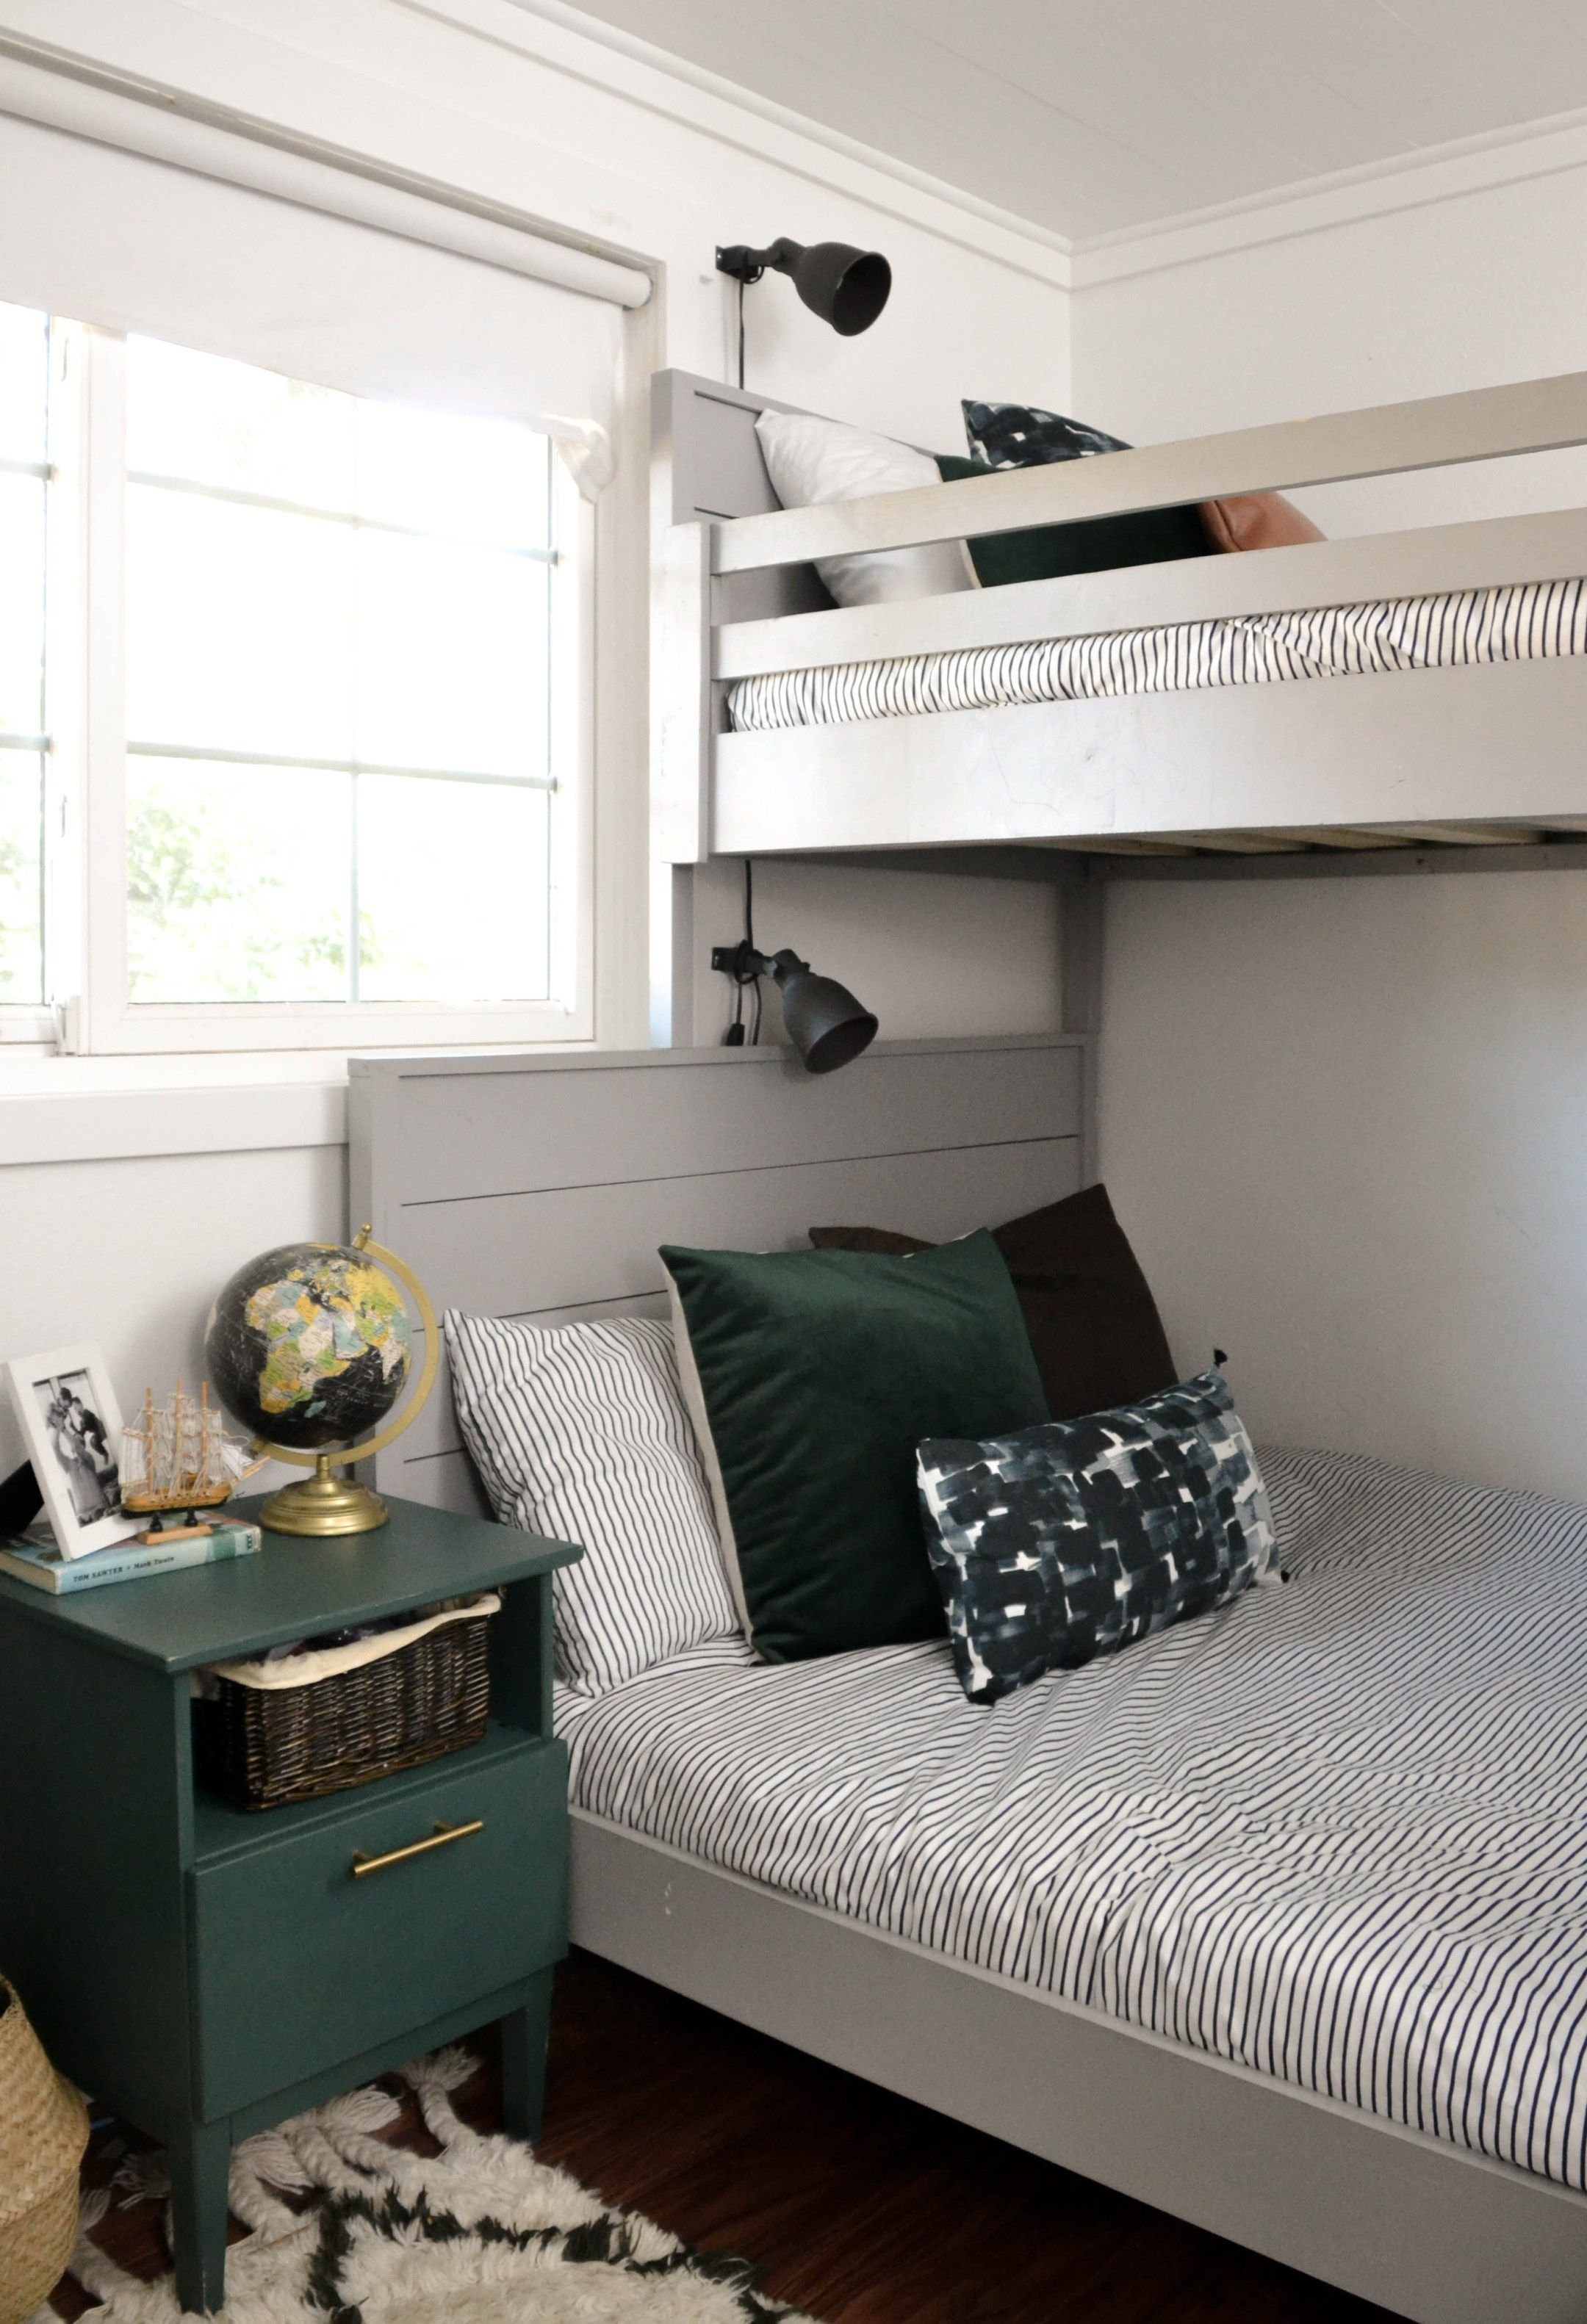 Small Shared Boys Room Diy Bunk Bed Small Shared Bedroom Beds For Small Rooms Shared Boys Rooms